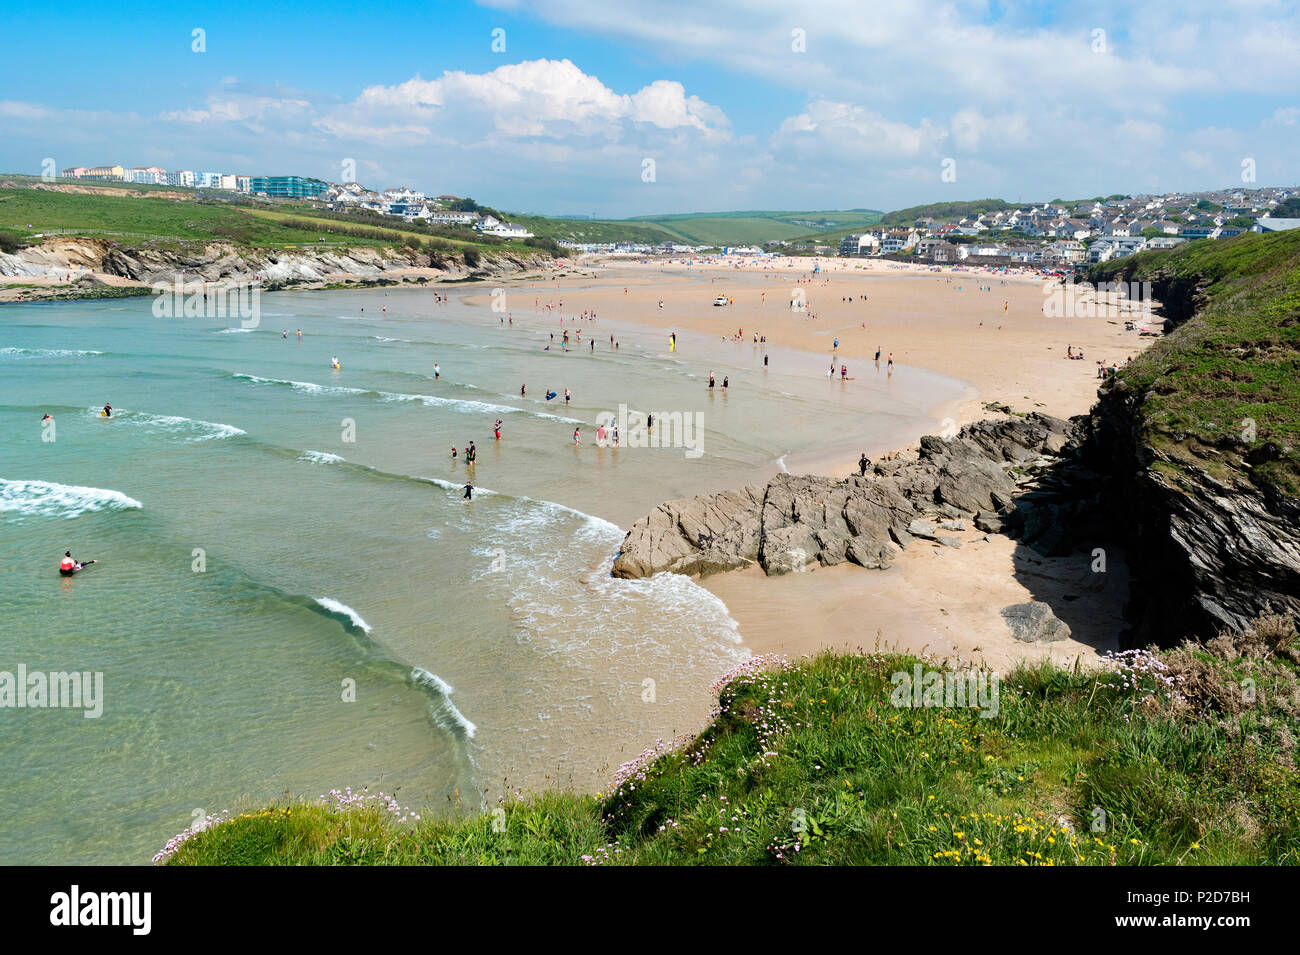 early summer at porth beach, newquay, cornwall, england, britain, uk, - Stock Image